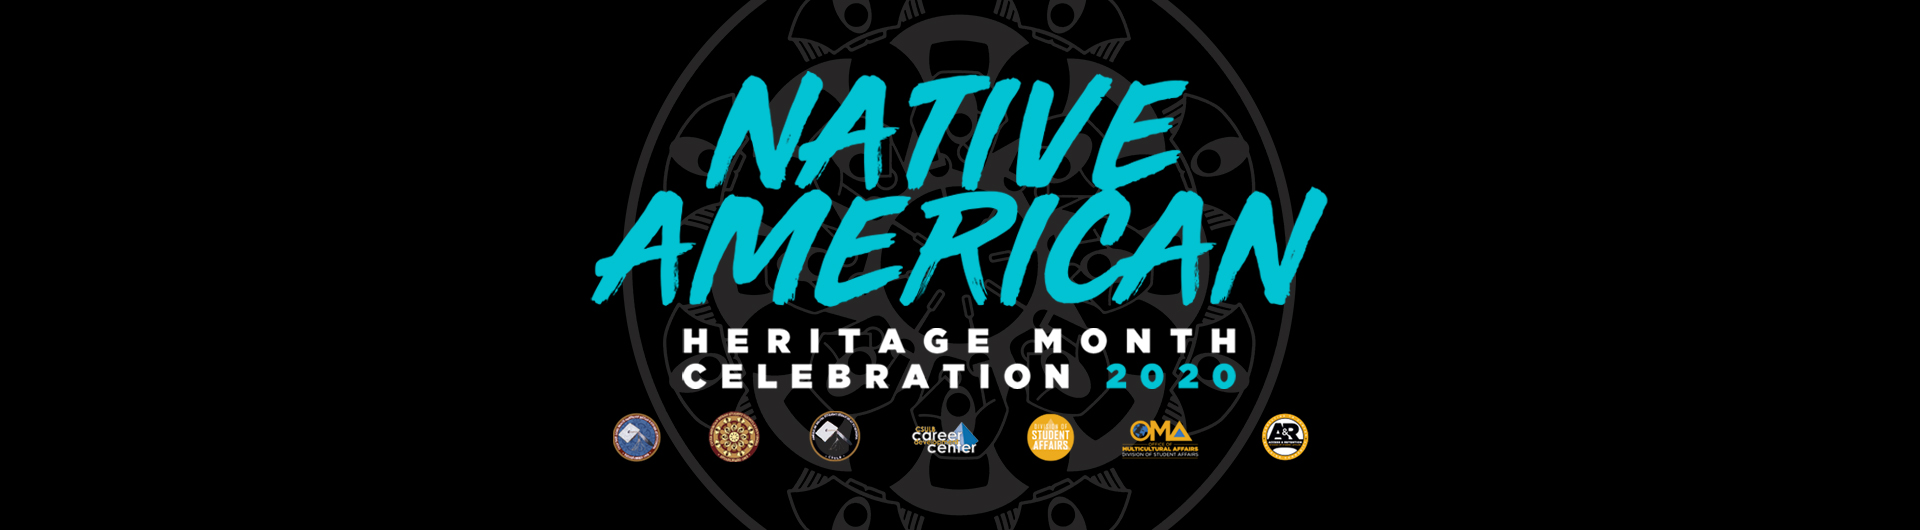 2020 Native American Heritage Month banner